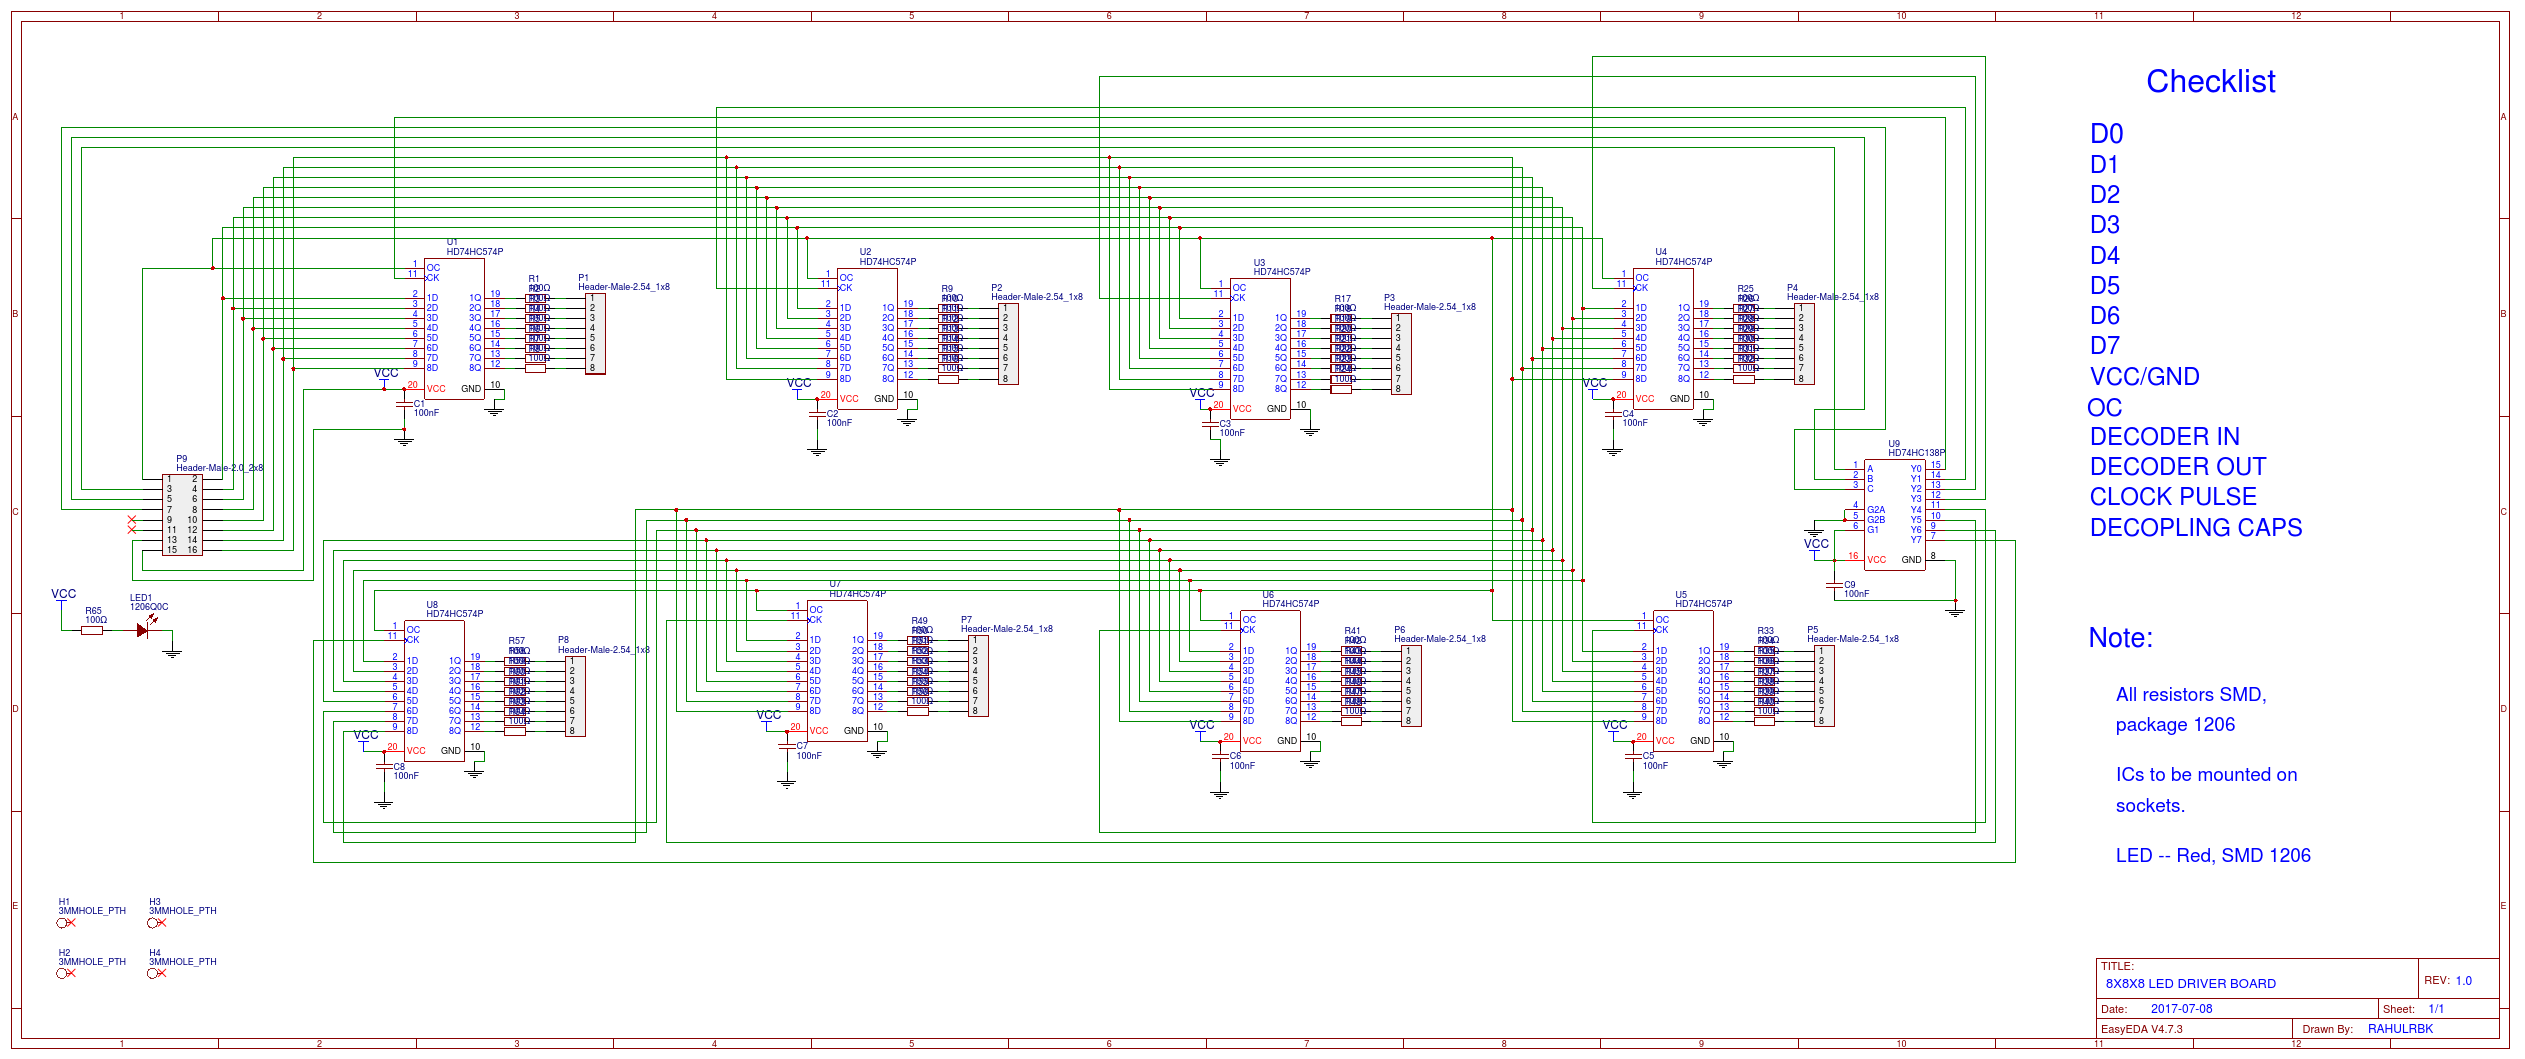 8x8x8 LED CUBE - EasA on 5x5x5 led cube schematic, jameco led cube schematic, cut airplane schematic, led matrix schematic, 4x4x4 led cube schematic, 3x3x3 led cube schematic,